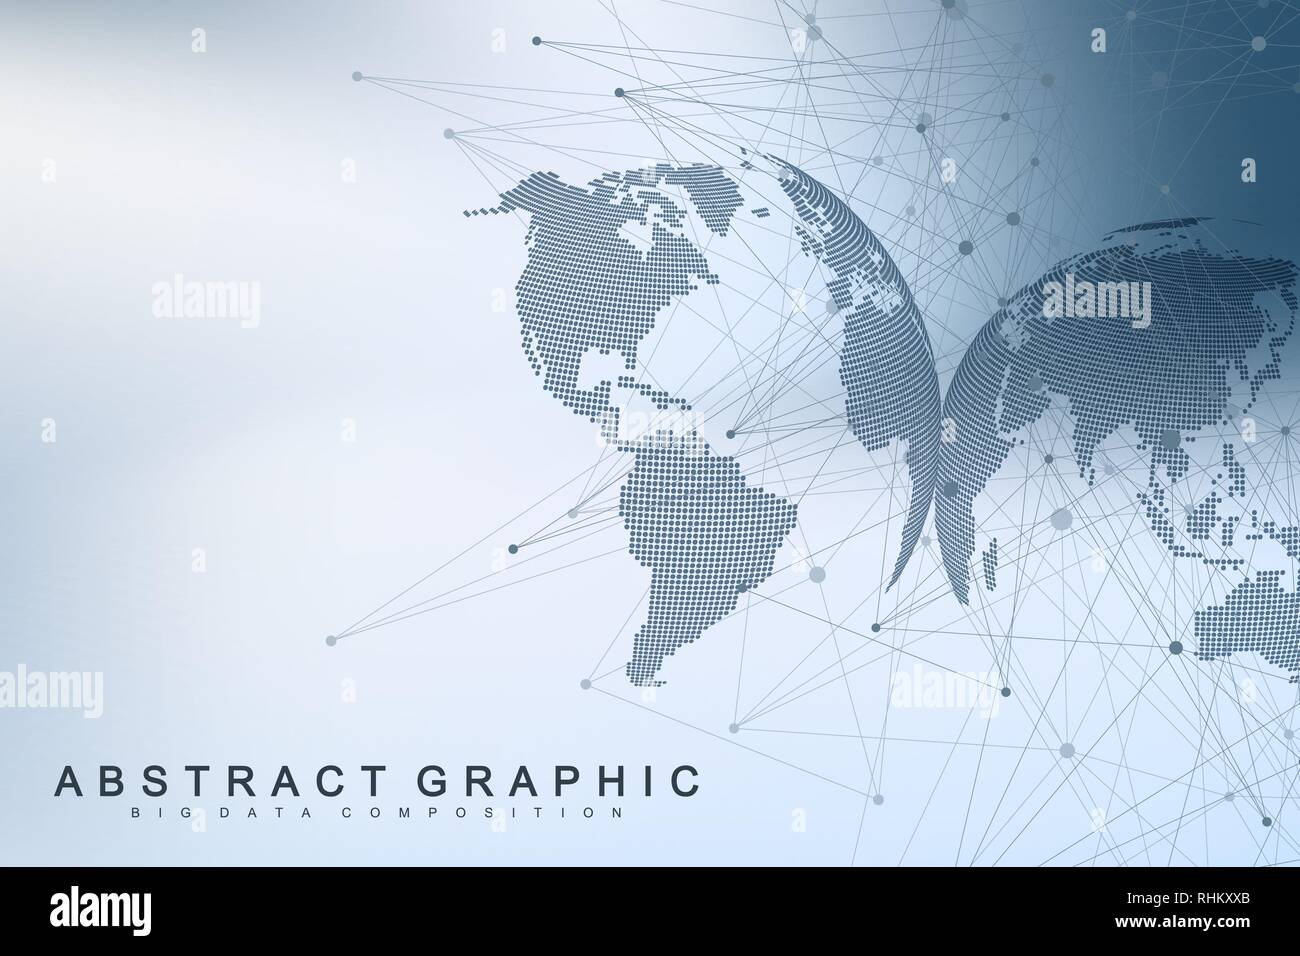 Technology abstract background with connected line and dots. Big data visualization. Artificial Intelligence and Machine Learning Concept Background - Stock Image